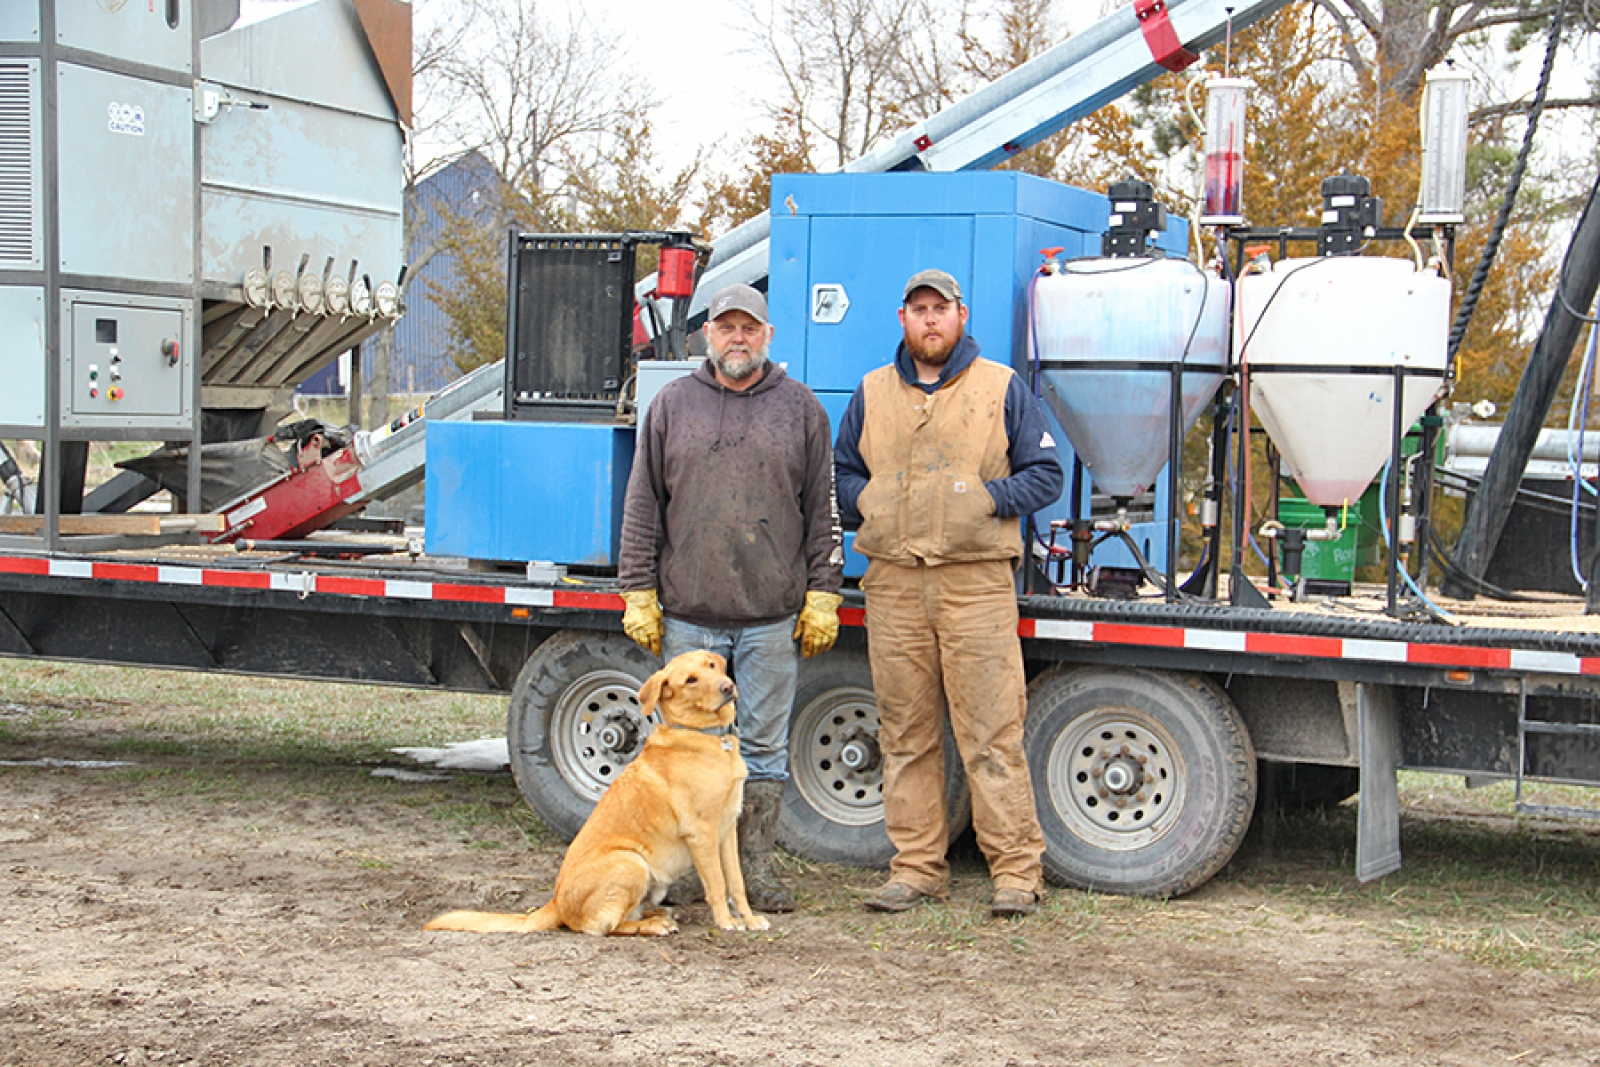 Rasmussens offer mobile grain cleaning, treating services